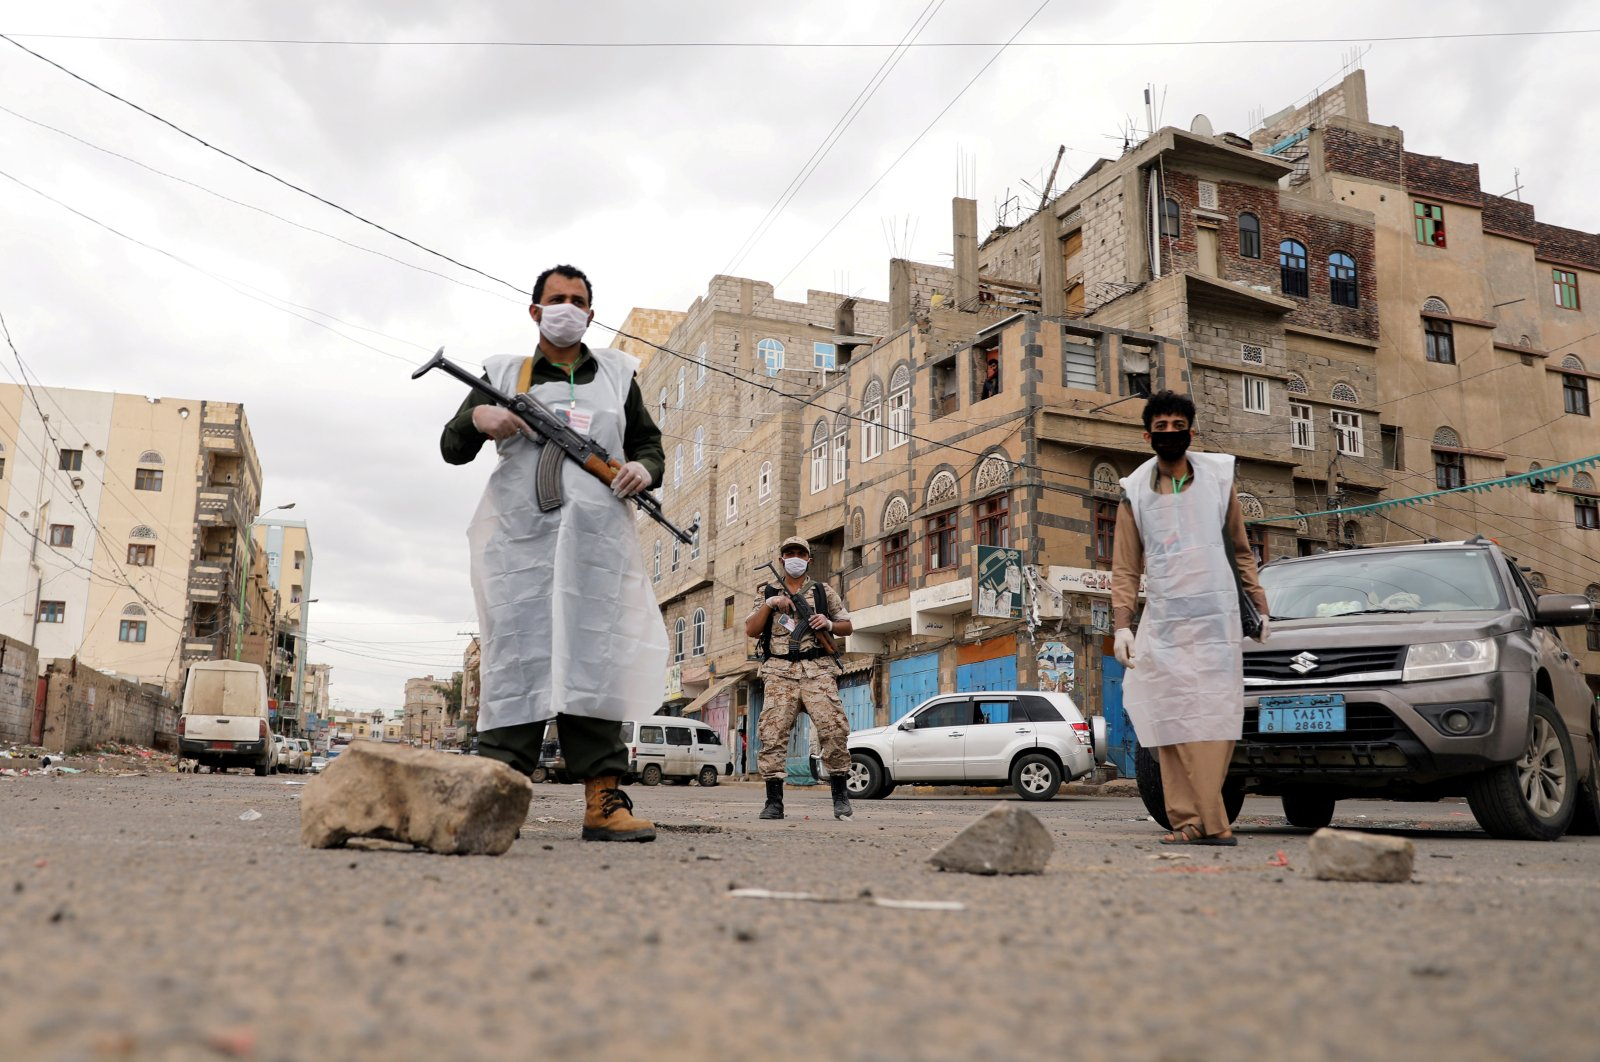 Security men wearing protective masks stand on a street during a 24-hour curfew amid concerns about the spread of the coronavirus, in Sanaa, Yemen, May 6, 2020. (REUTERS)